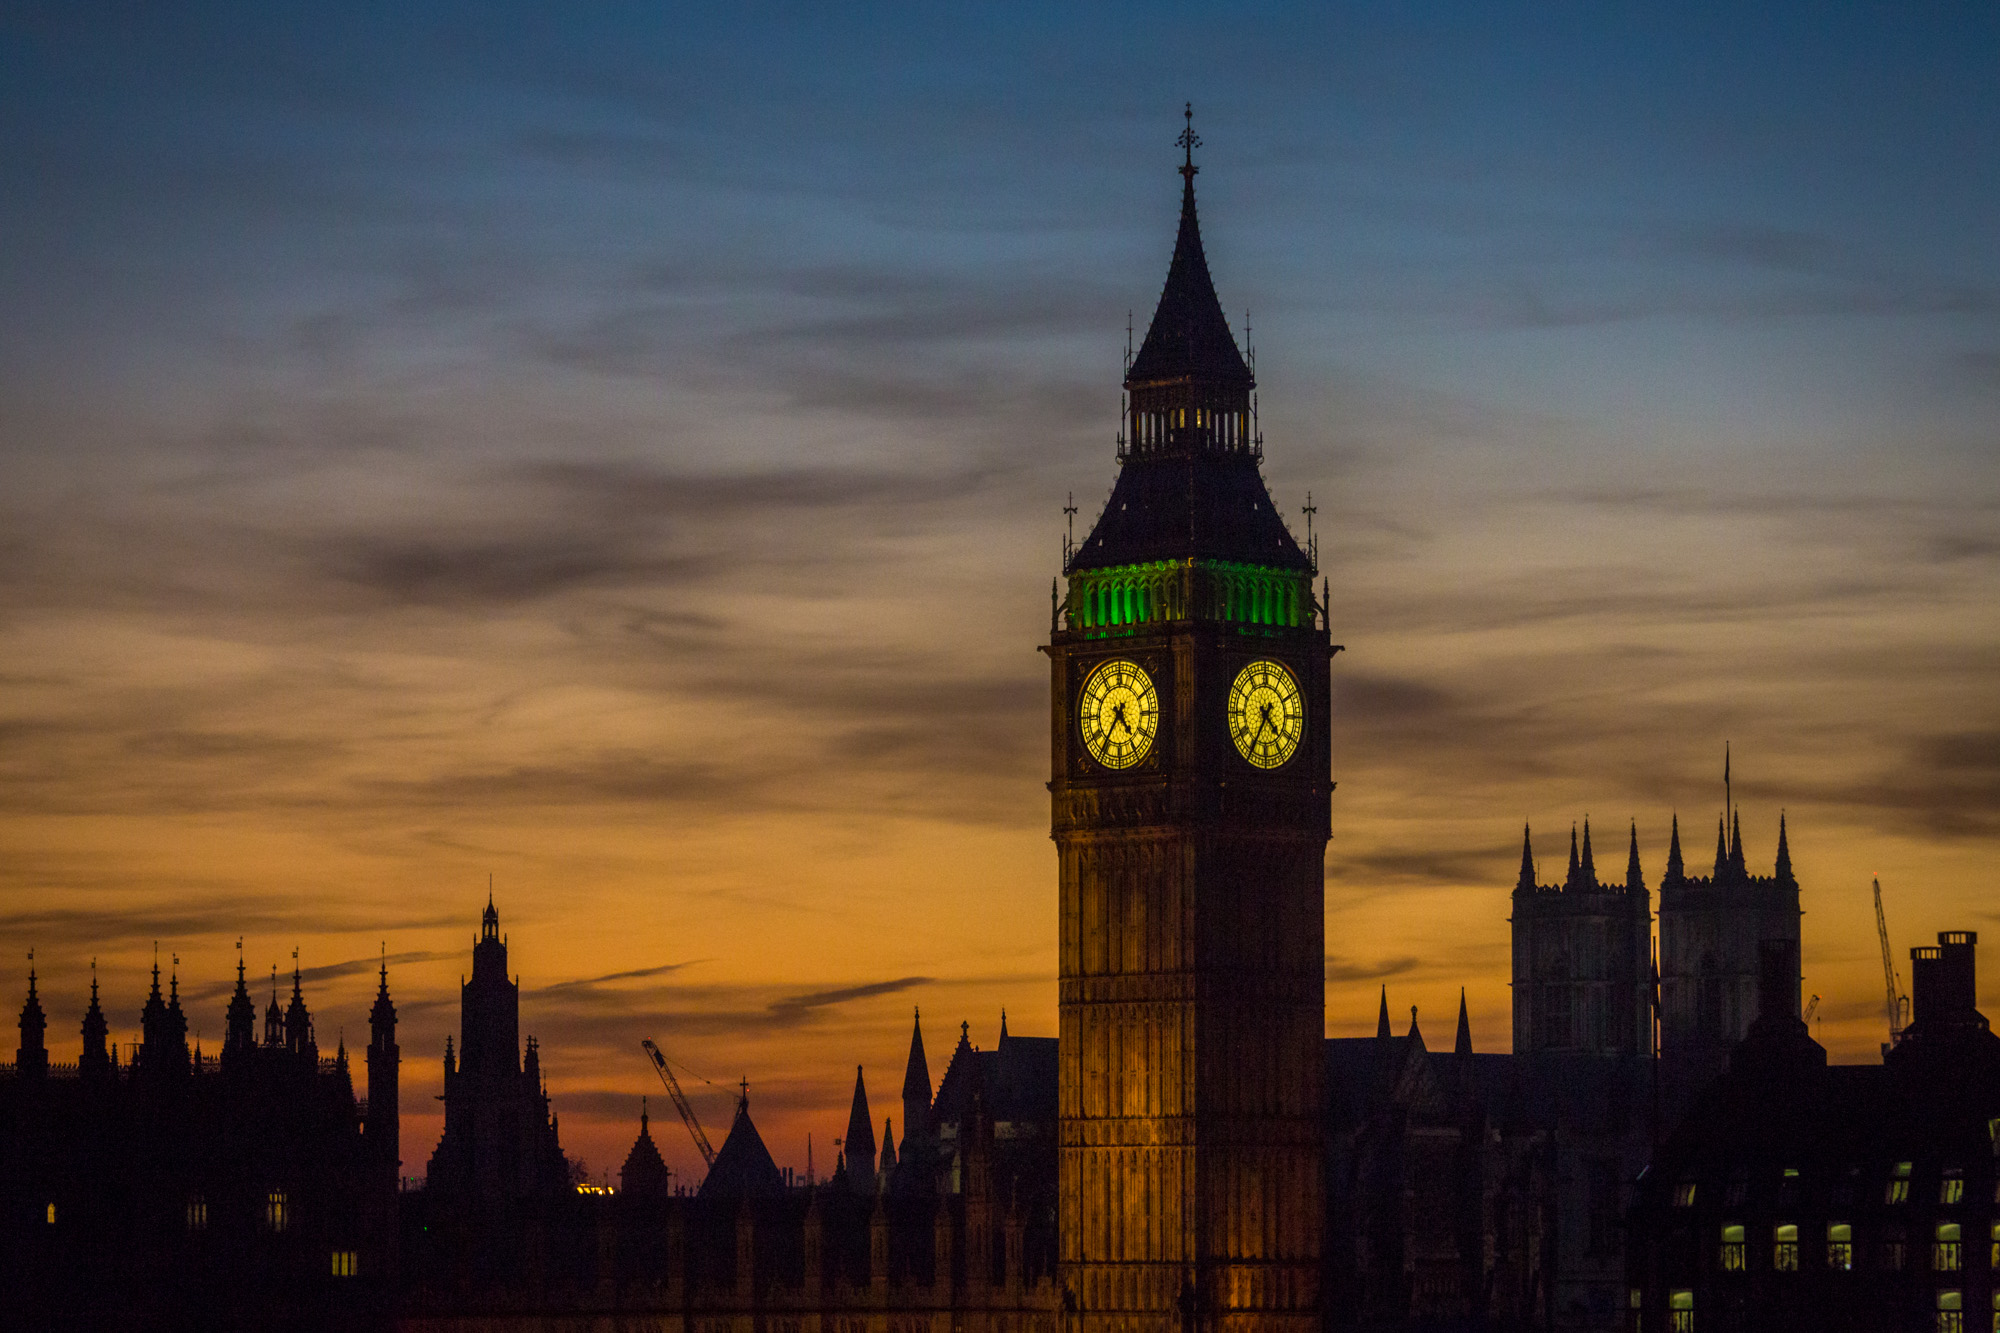 long exposure night photography of the Elizabeth Clock Tower known as Big Ben in London at sunset with silhouetted architecture